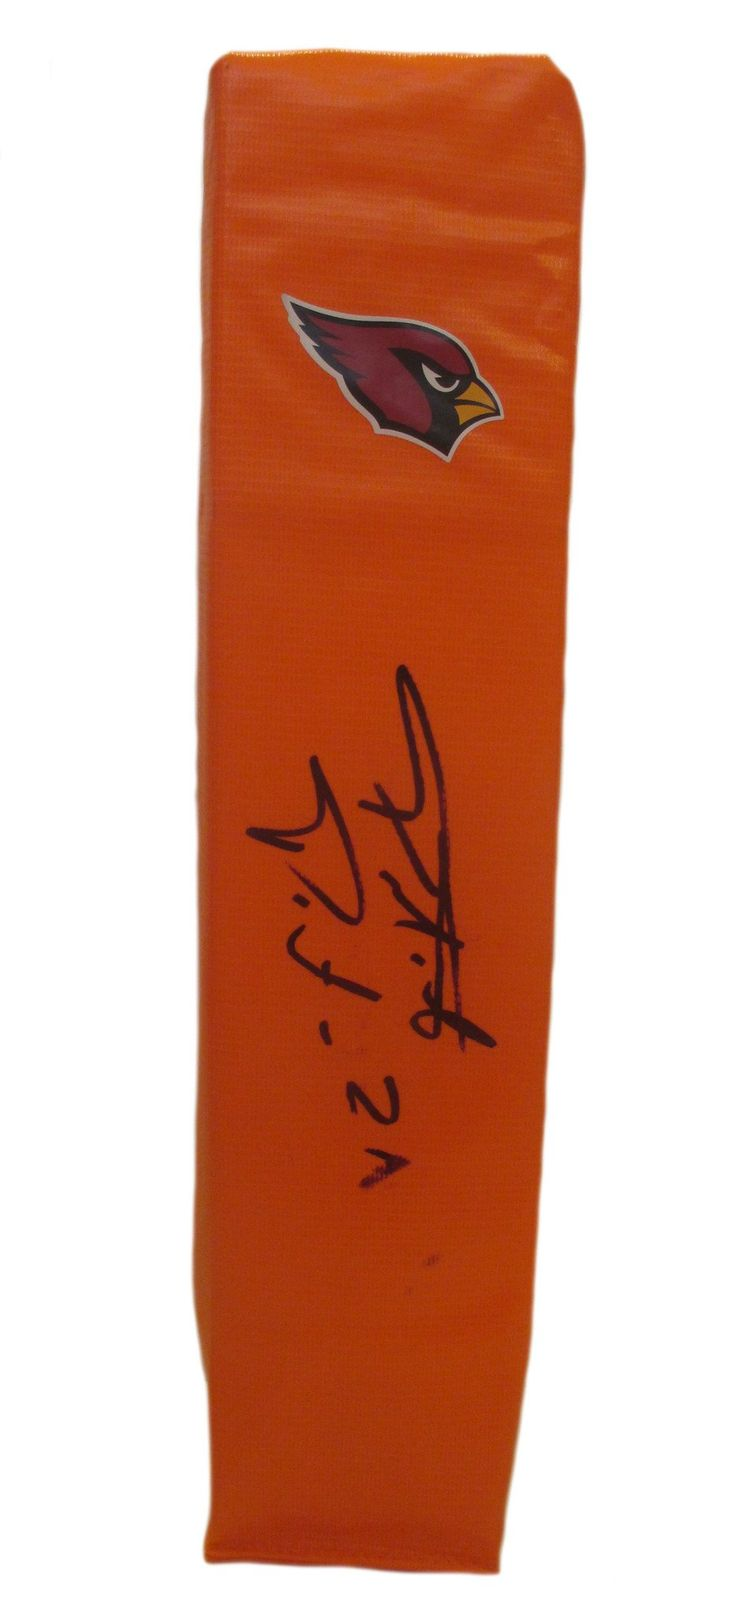 Patrick Peterson Autographed Arizona Cardinals Full Size Football End Zone Touchdown. This is a brand-new custom Patrick Peterson signed Arizona Cardinals logo full size football end zone pylon.  This pylon features Patrick Peterson's rare full signature. This pylon measures 4 inches (Width)  X 4 inches (Length) X 18 inches (Height).  Patrick signed the pylon in black sharpie. Check out the photo of Patrick signing for us. ** Proof photo is included for free with purchase. Please click on…